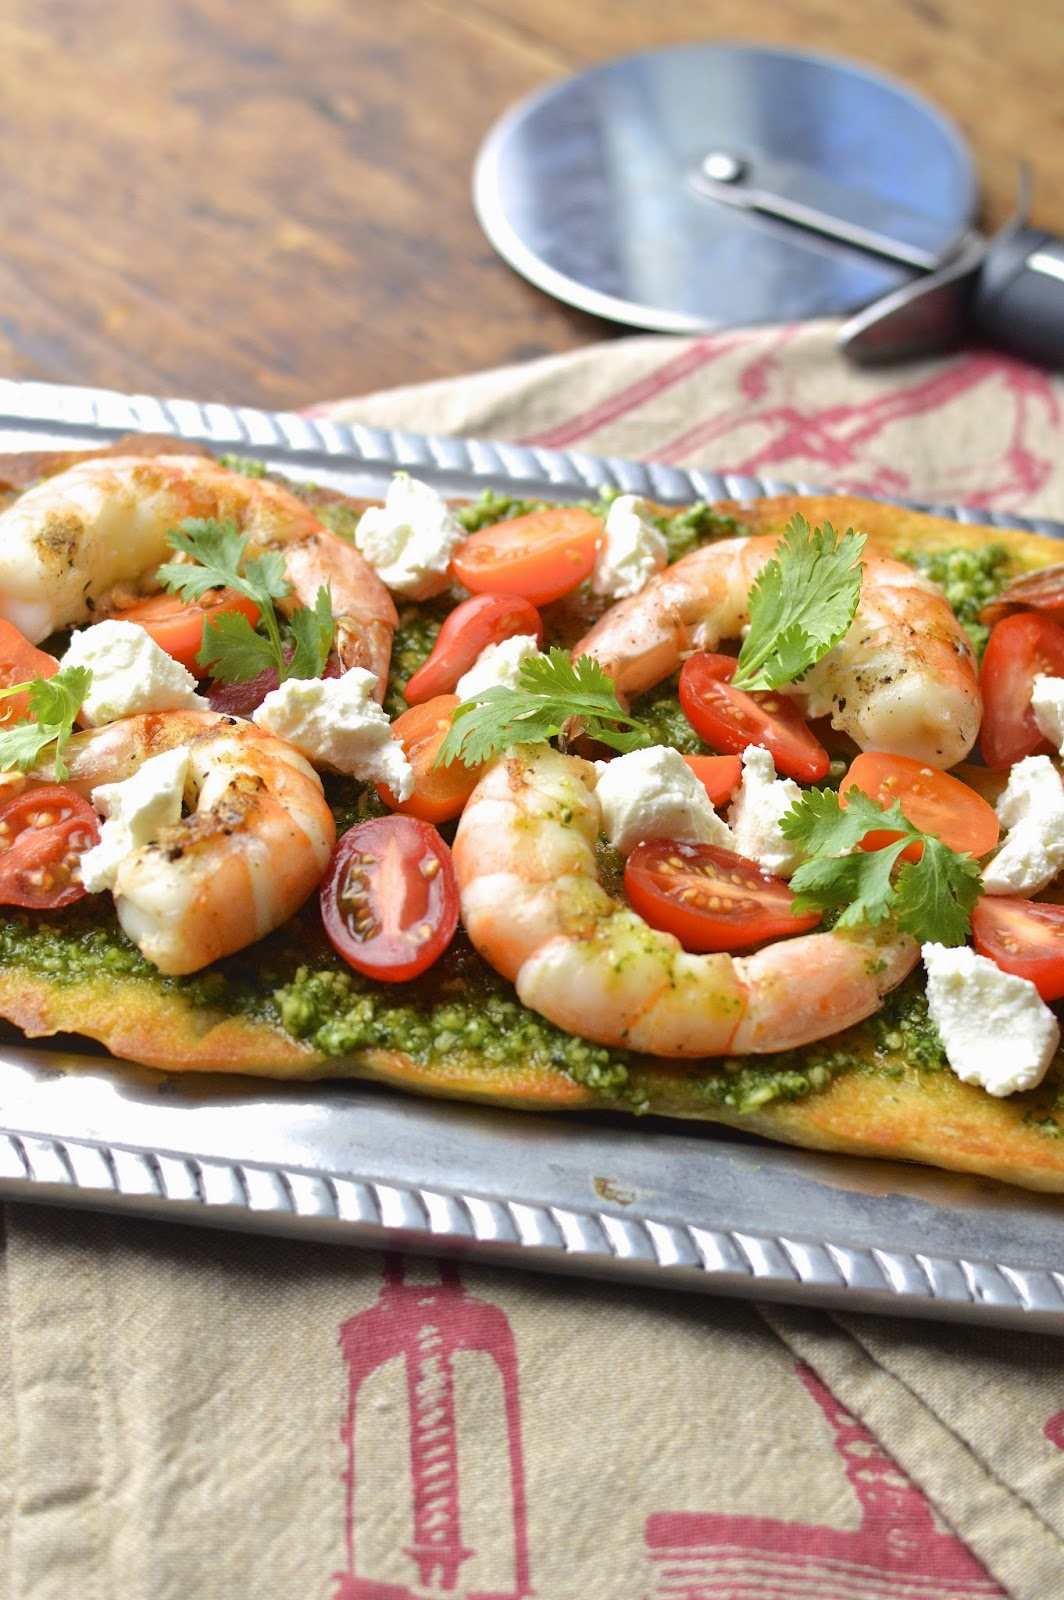 Bake pre-made pizza dough to make the perfect flatbread with grilled shrimp, cilantro pesto and goat cheese.